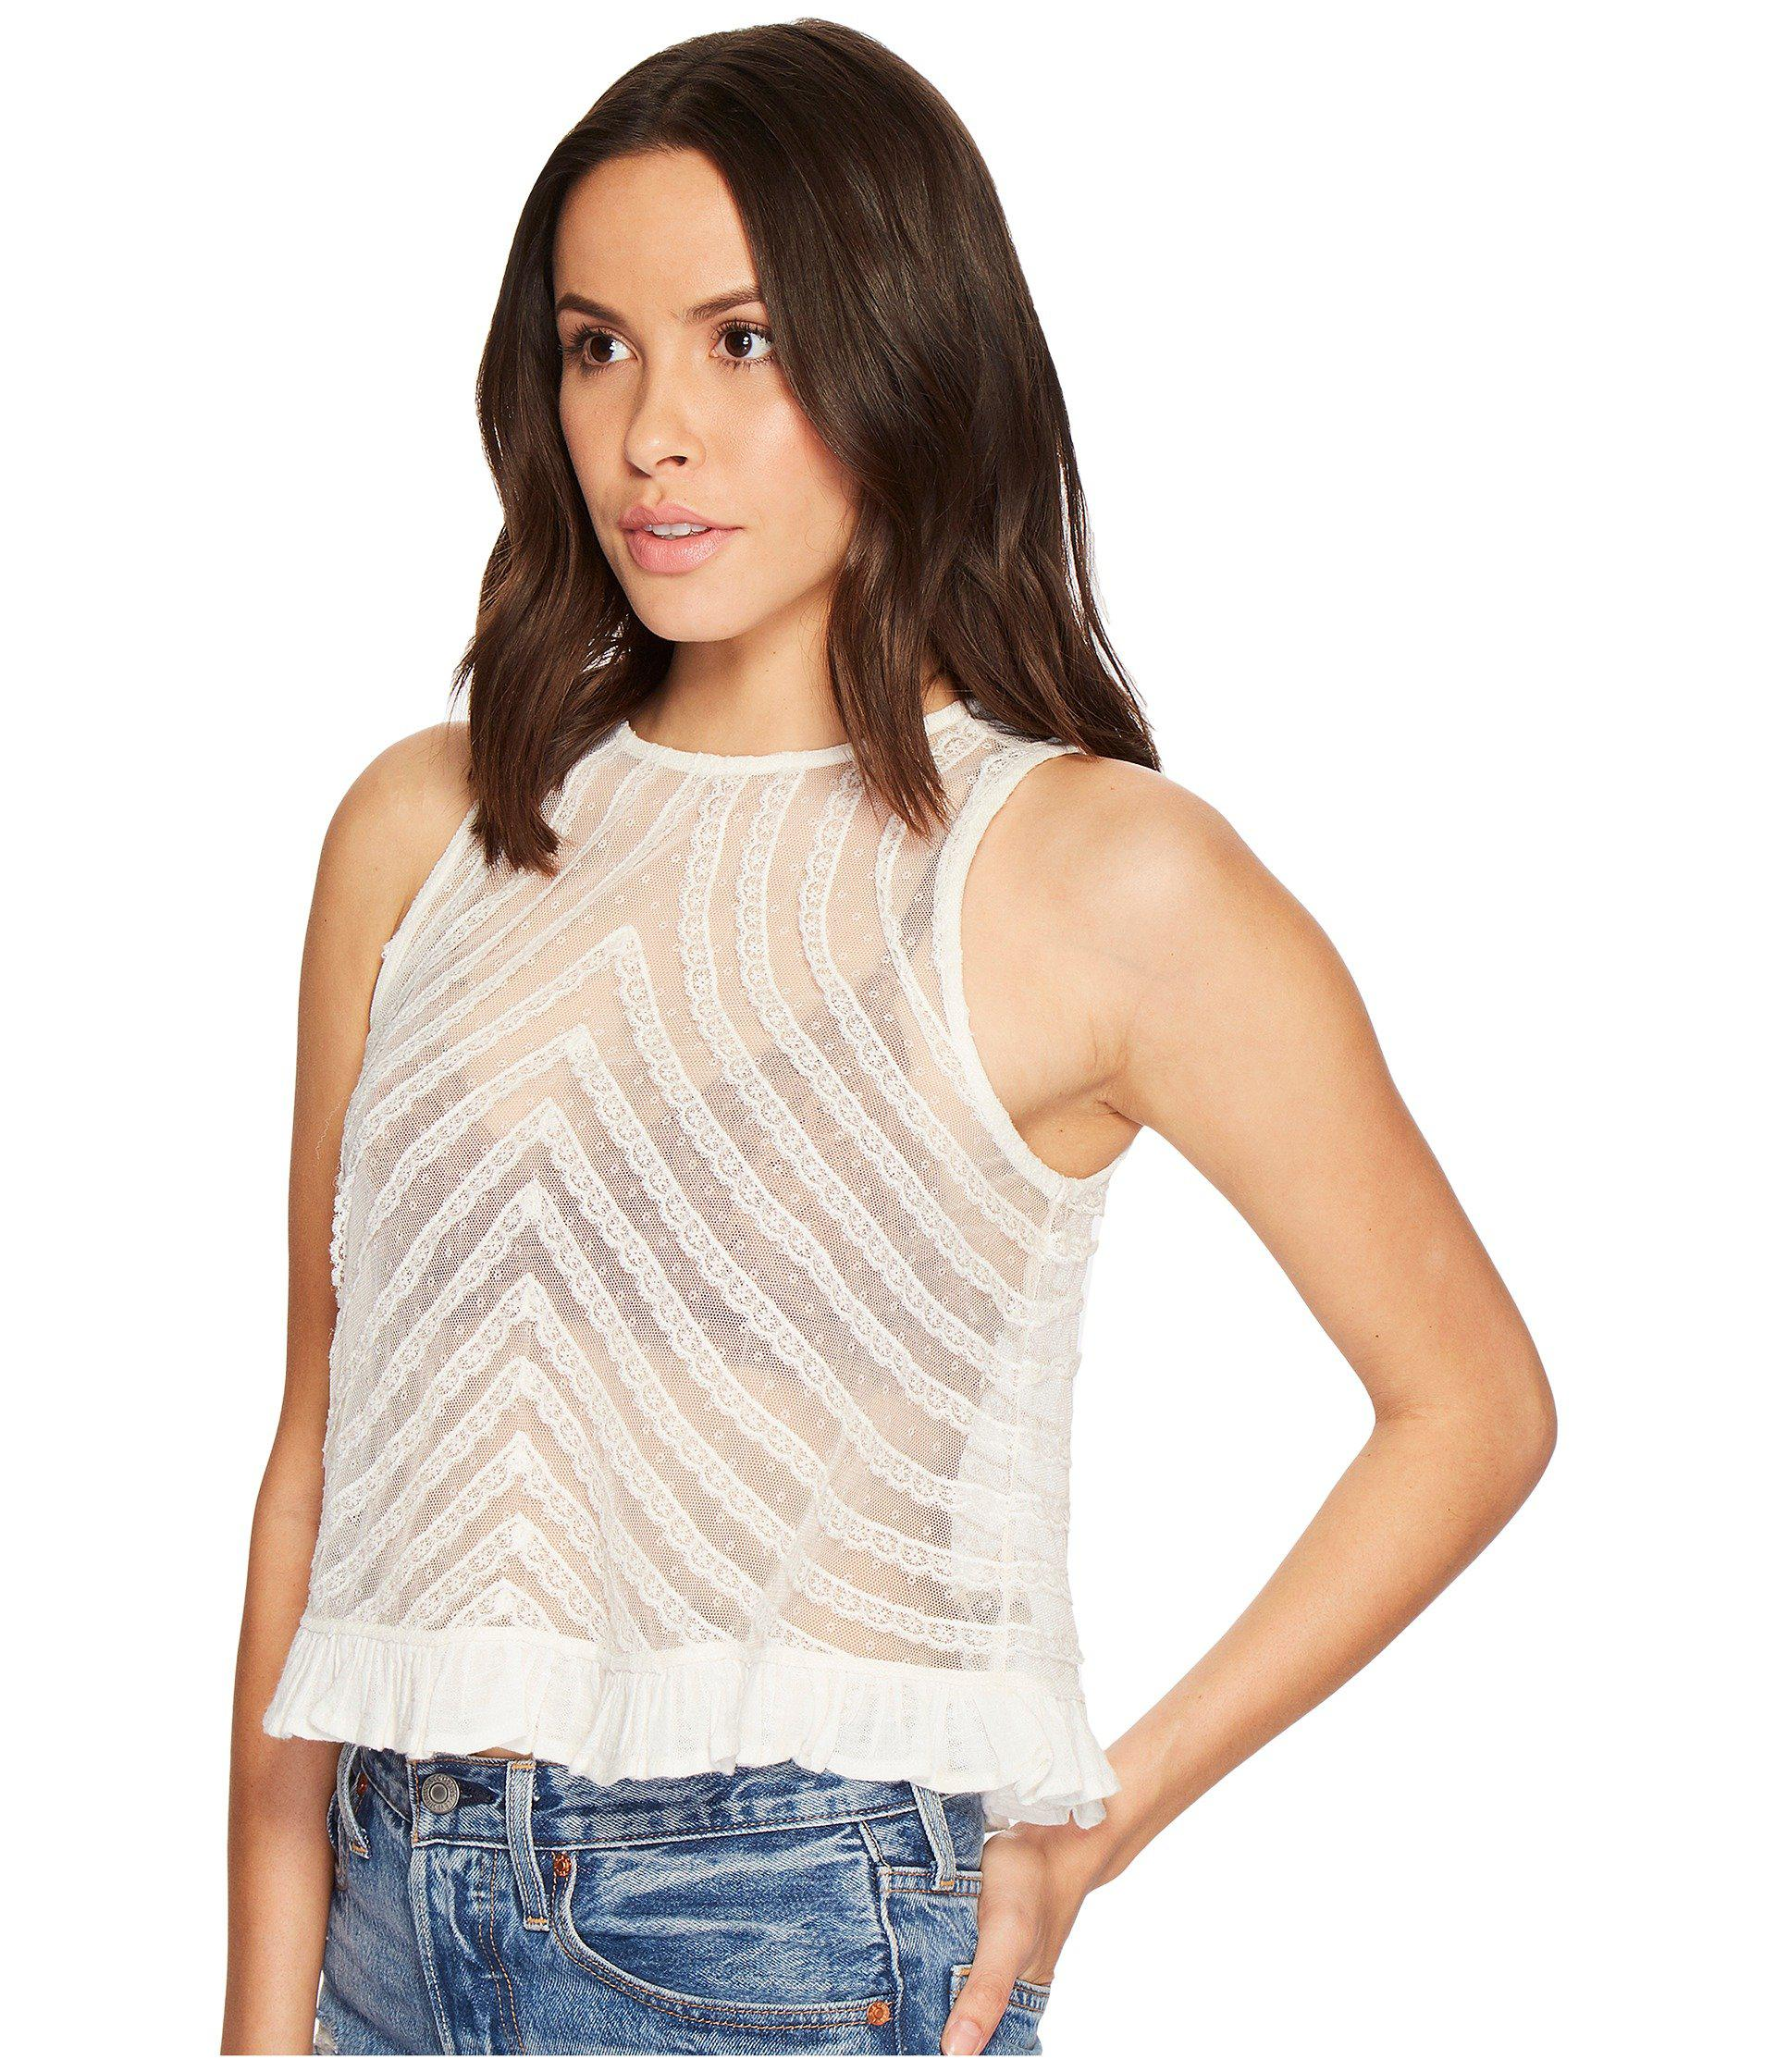 d2f5b757793d6 Lyst - Free People She s A Doll Tank Top in White - Save 63%